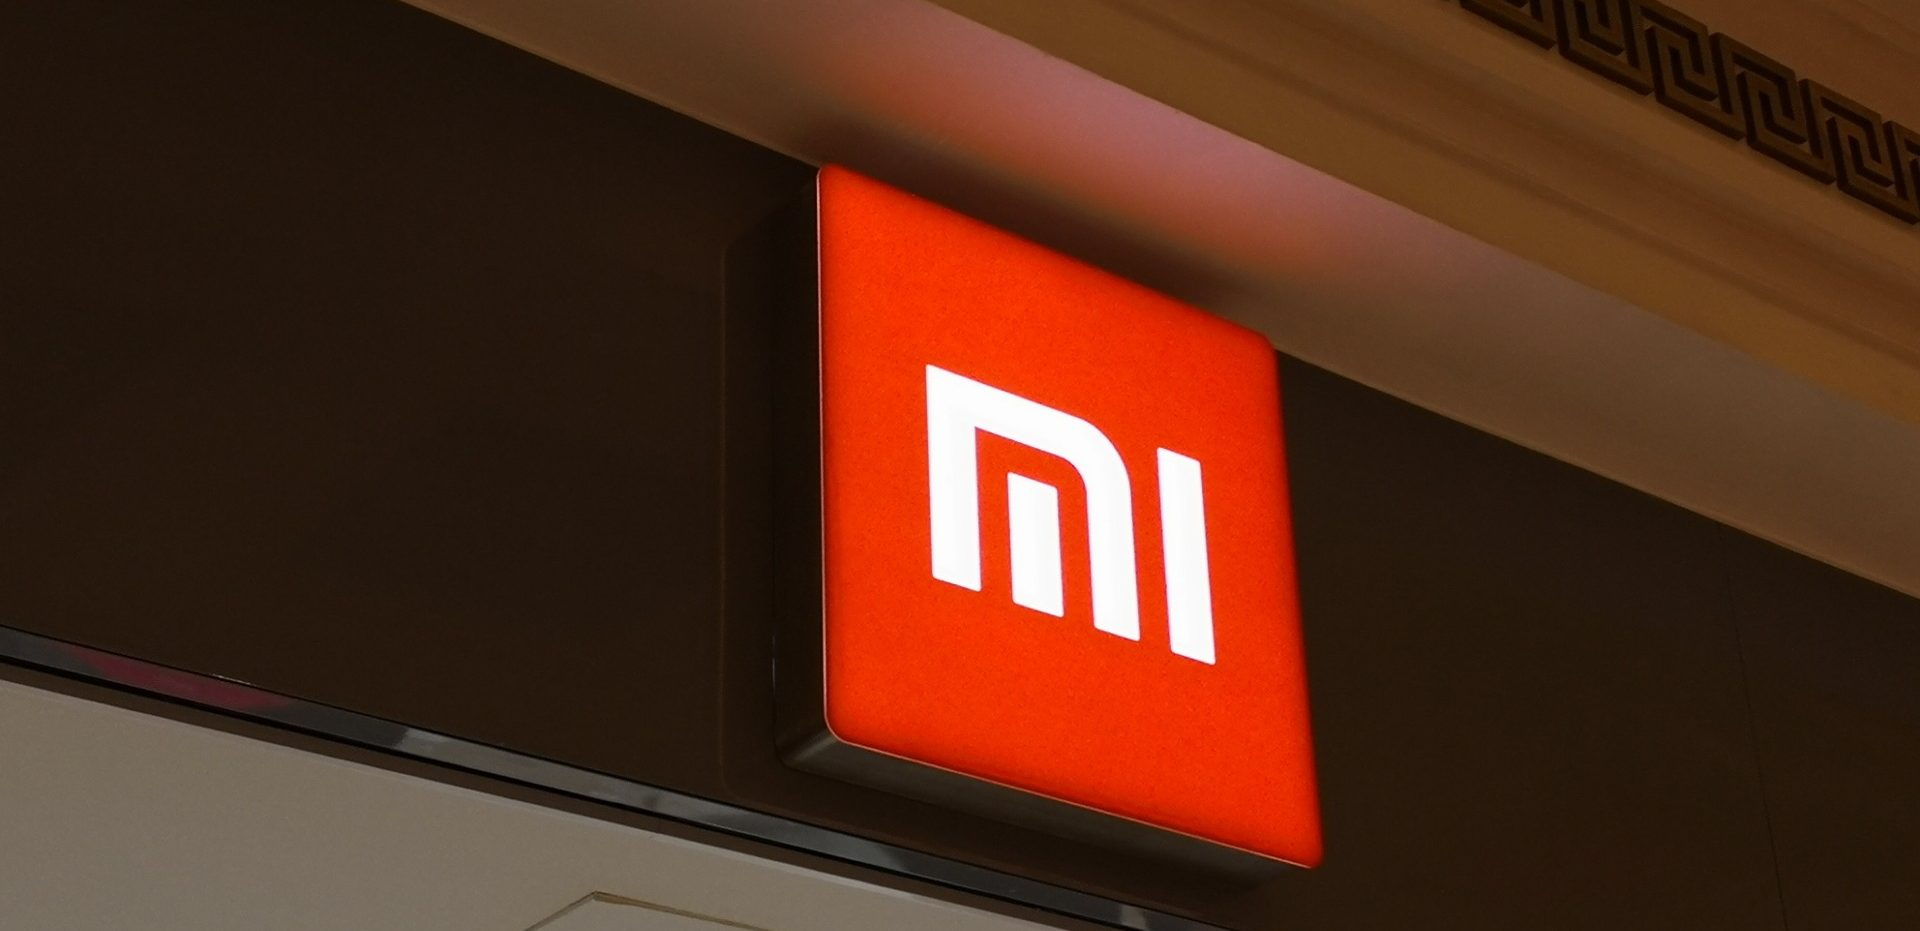 Xiaomi, Huawei, OPPO and Vivo will maintain their leadership in the Chinese market this year